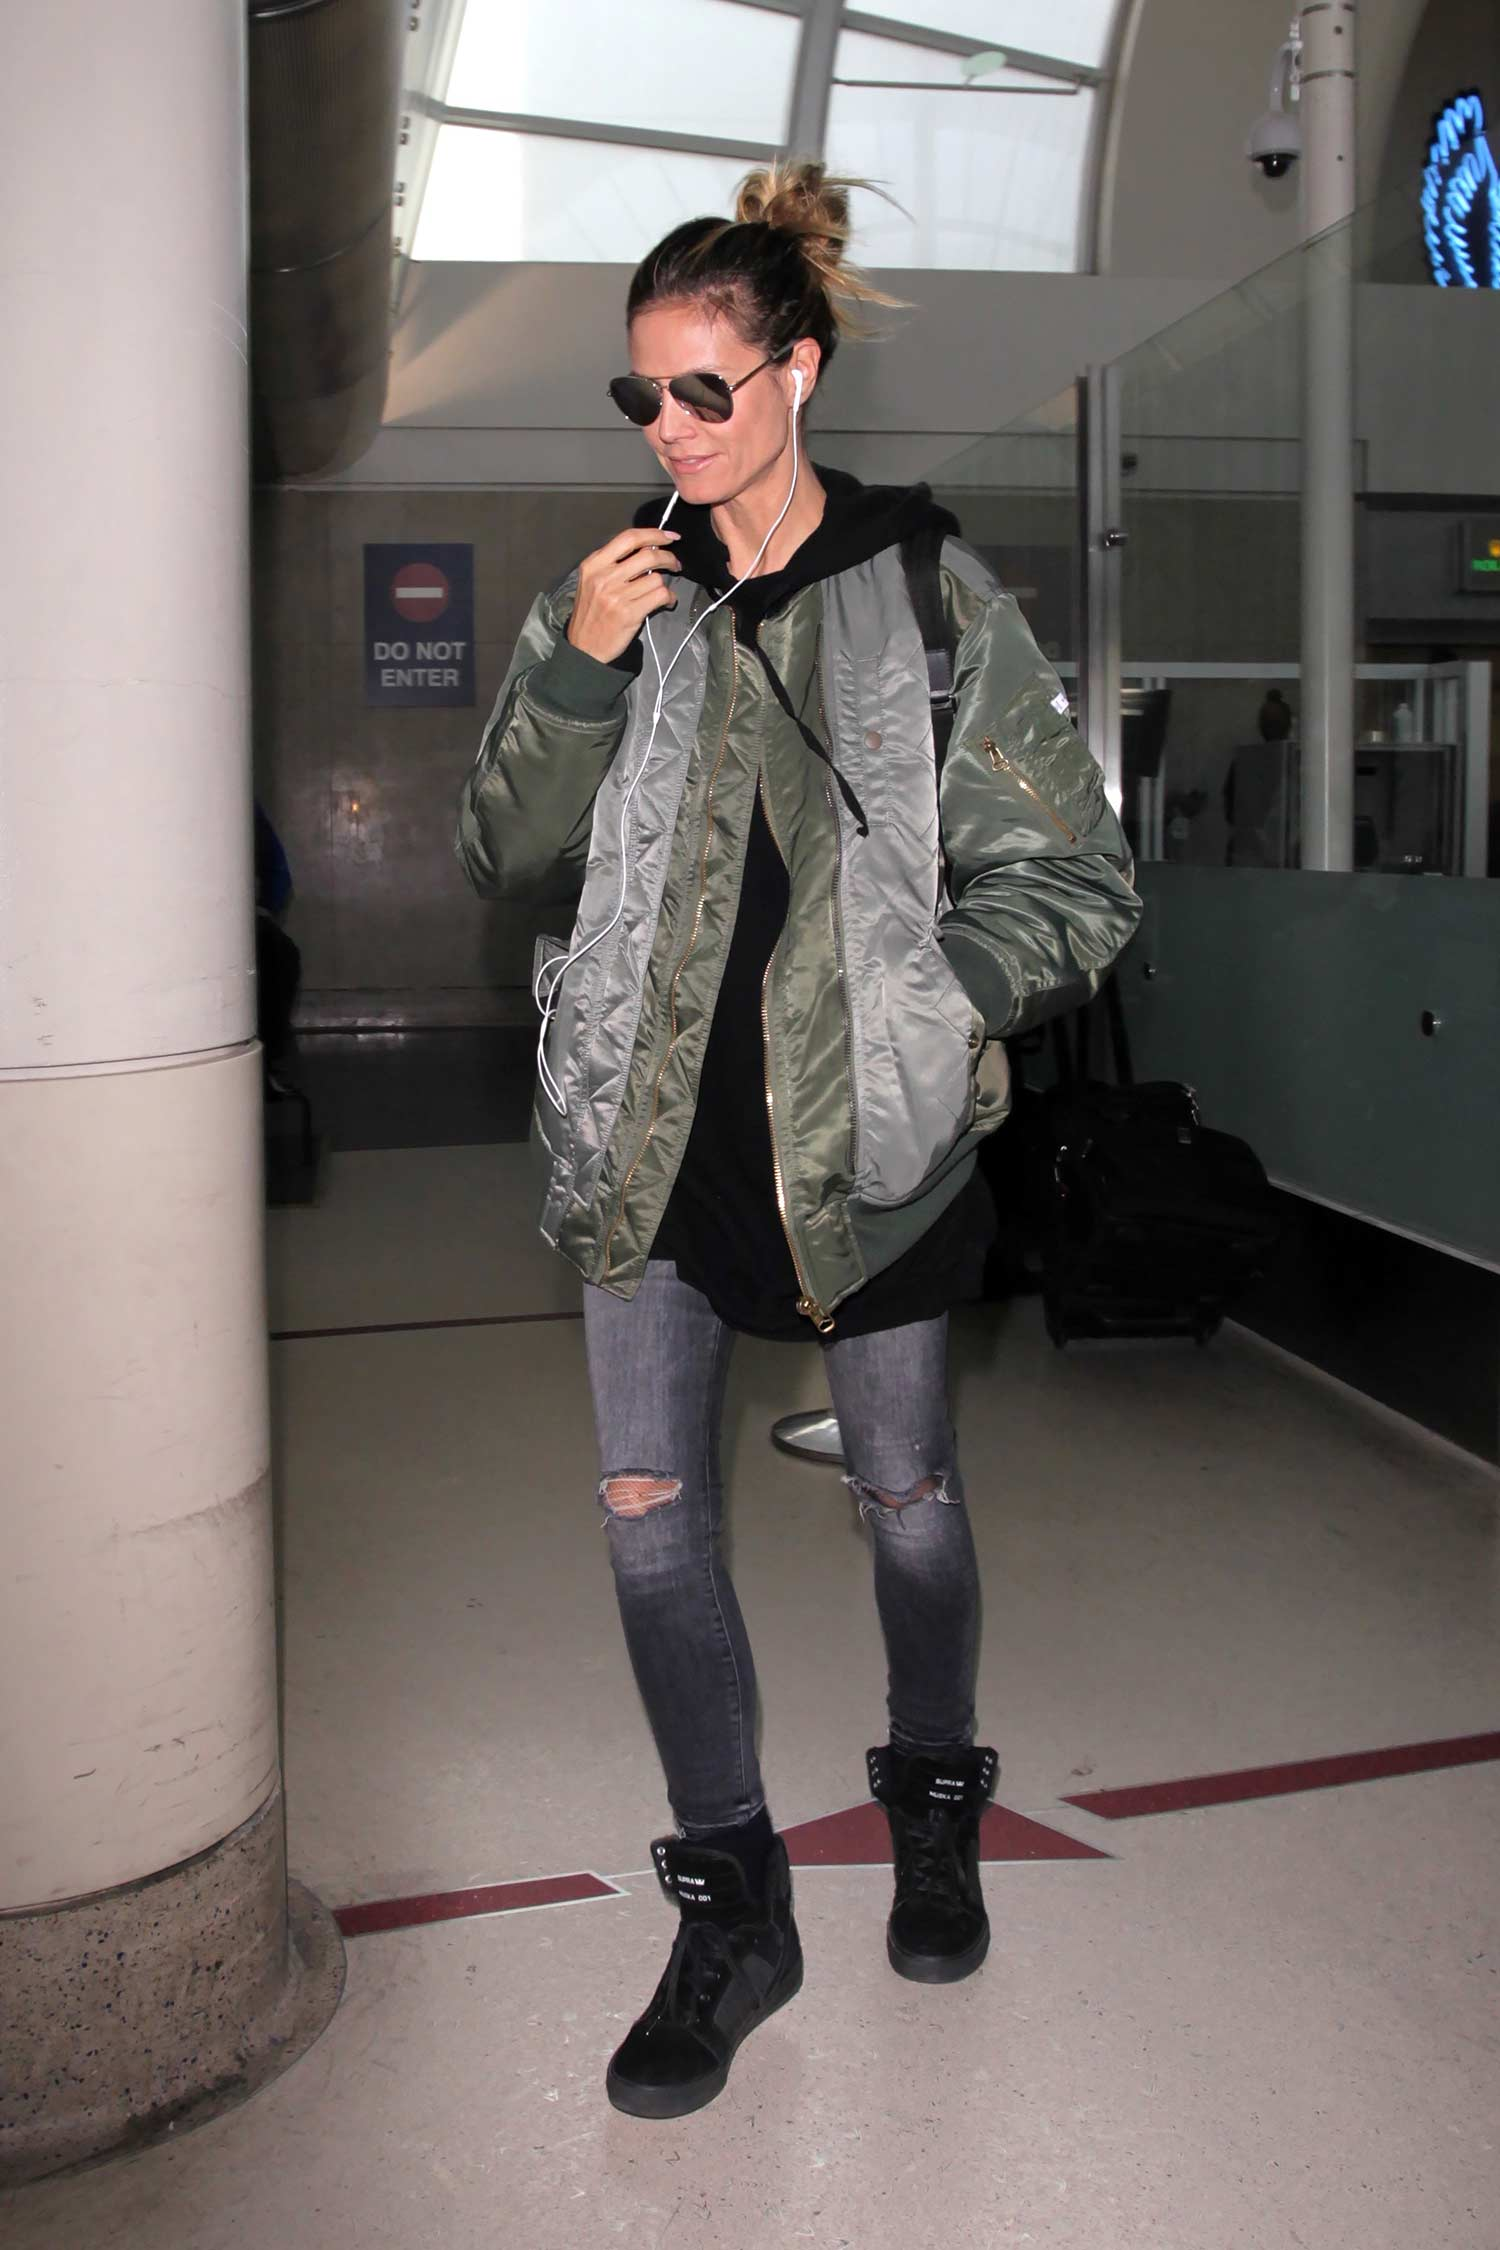 heidi-klum-mother-jeans-grey-bomber-jacket